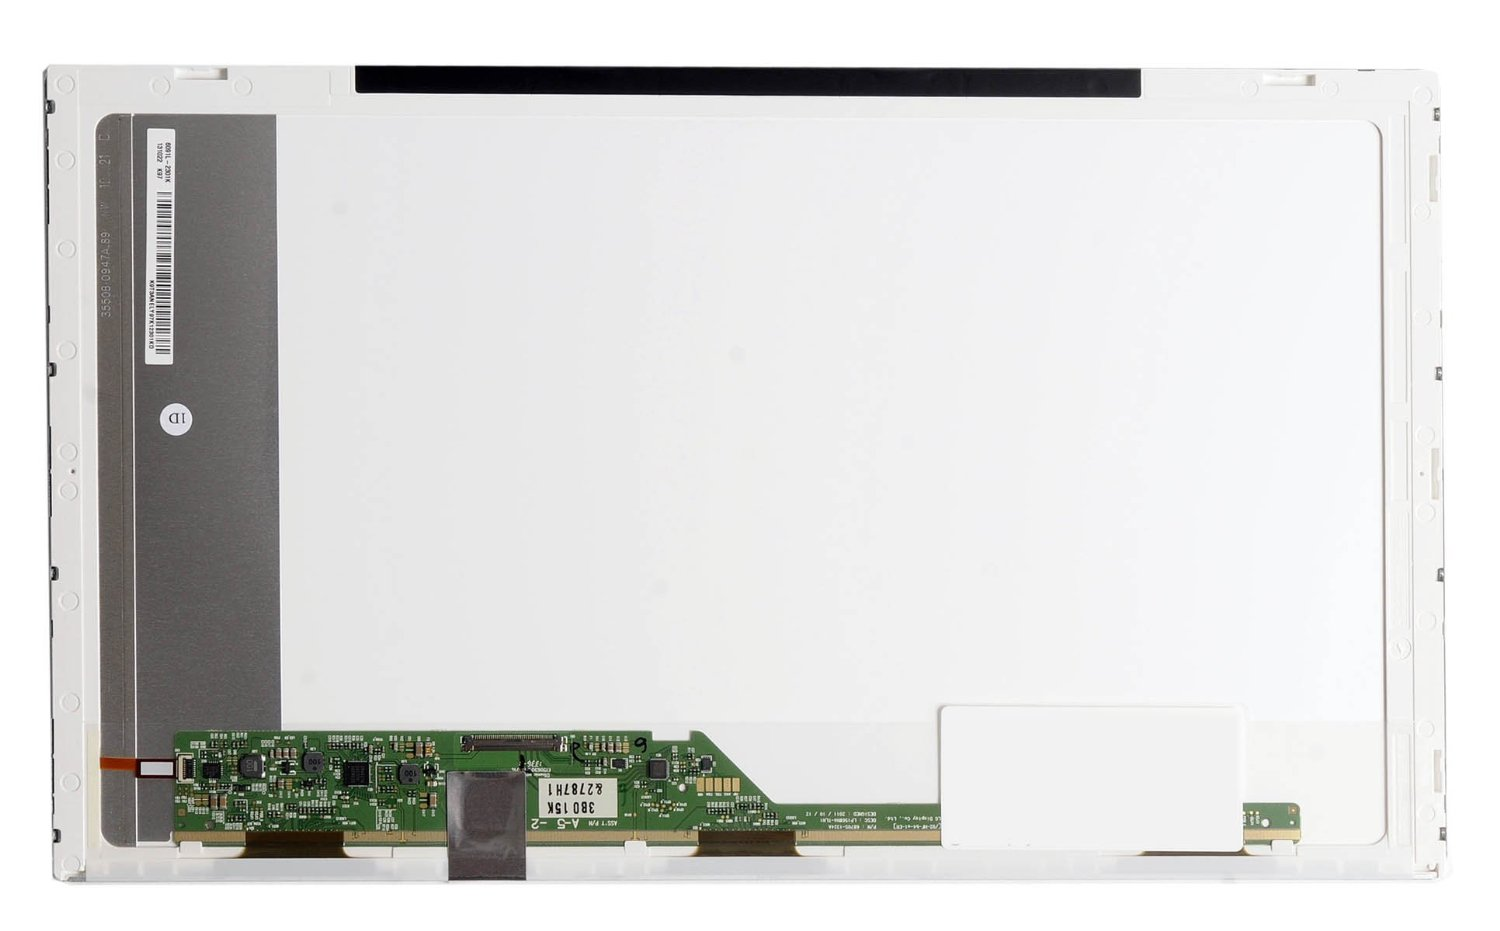 For Toshiba Satellite L755-S5103 & L755-S5107 NEW 15.6 HD LED LCD Screen , Satellite L755 Series Display Replacement